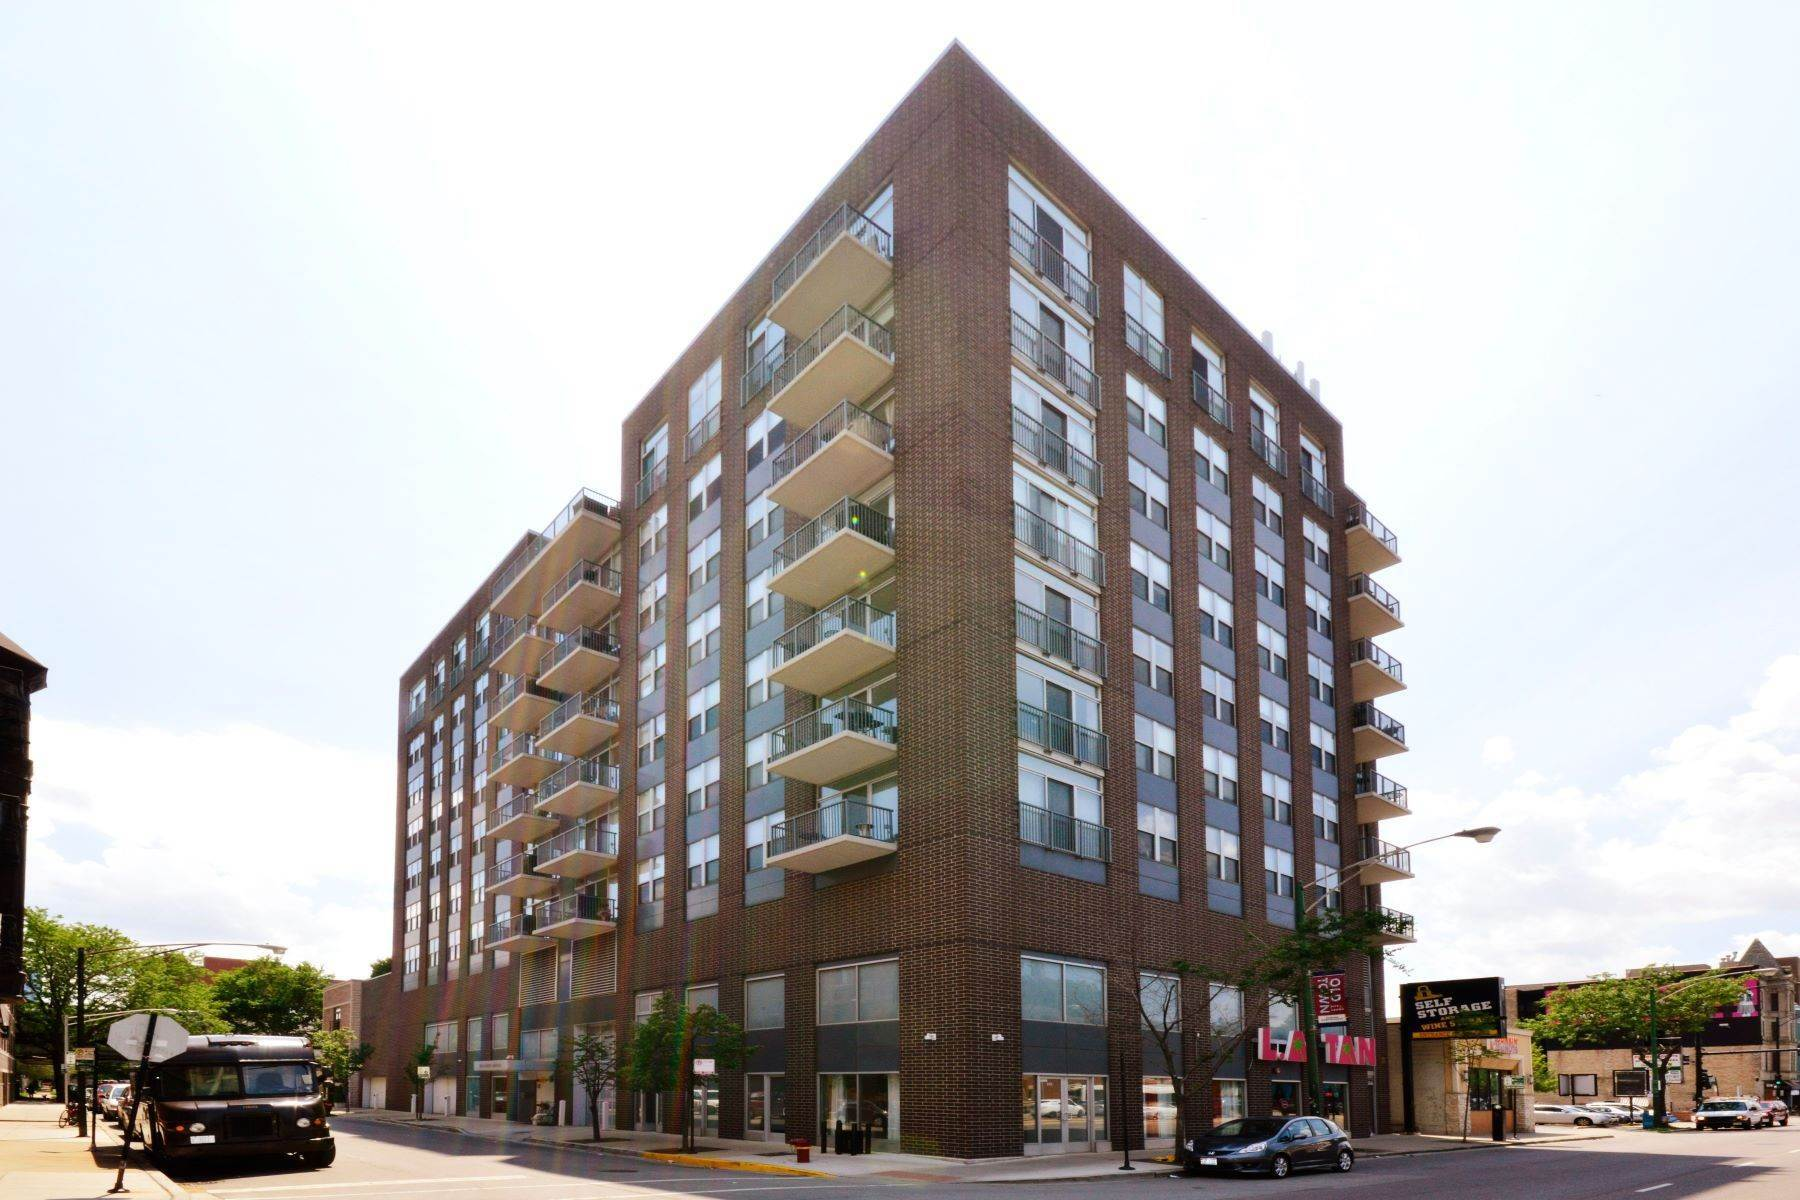 1. Condominiums at 1546 N Orleans Street, Unit 608 Chicago, Illinois 60610 United States